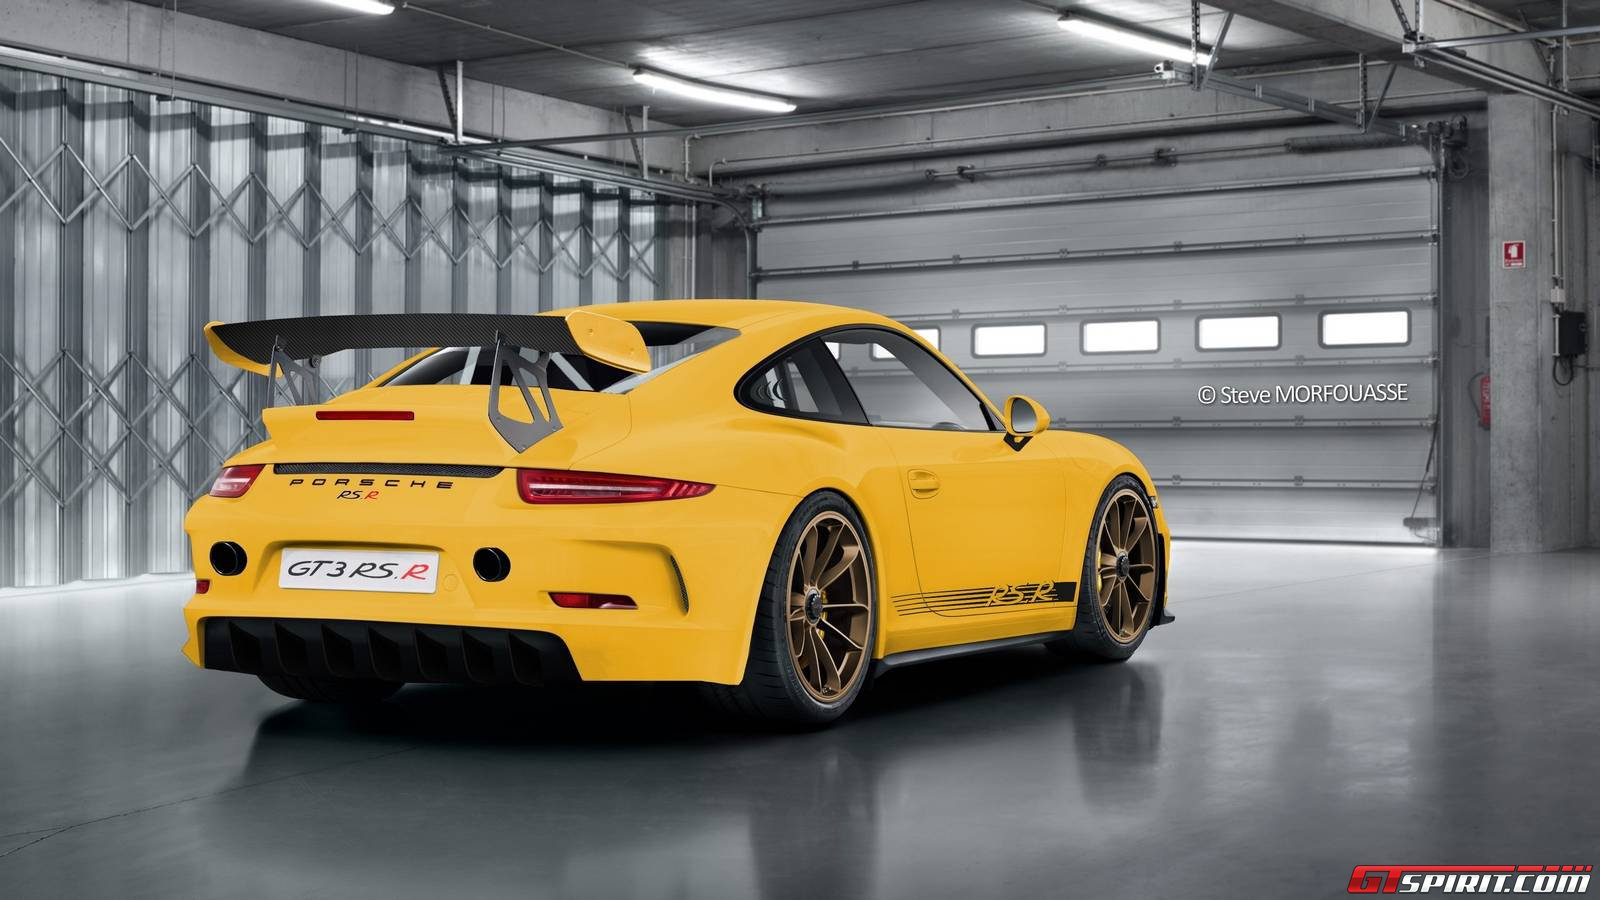 Porsche 991 Gt3 Rs R Project By Steve Morfouasse Is Impressive